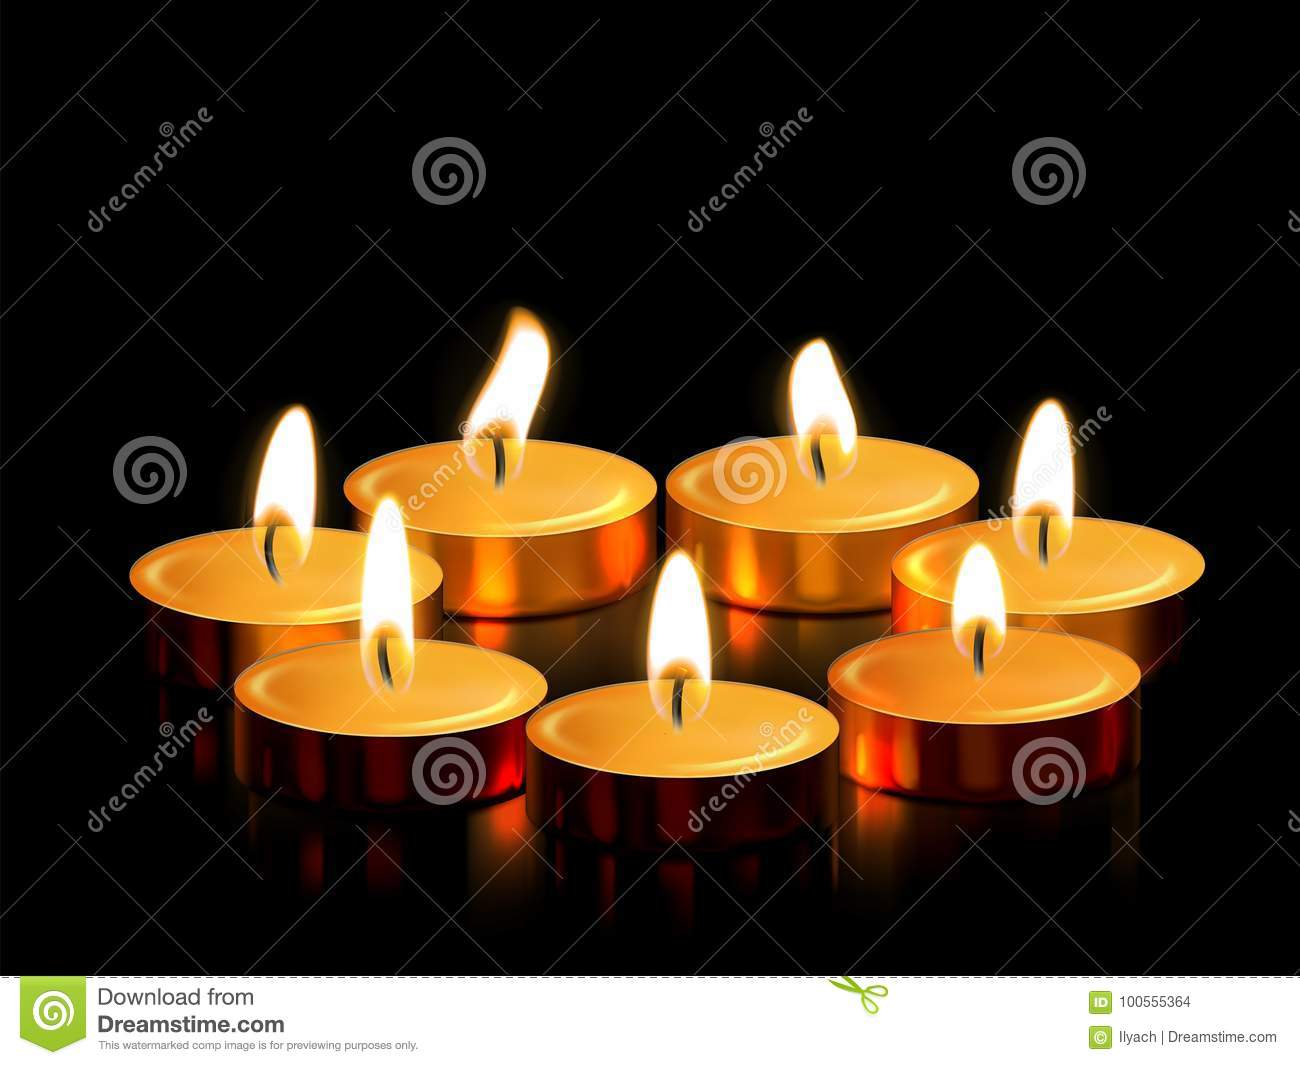 Candle Light Or Golden Candle Decoration Of Burning Flame For Spiritual  Magic Ceremony Or Witchcraft Religious Rite, Diwali Festival, Birthday Or  Wedding.